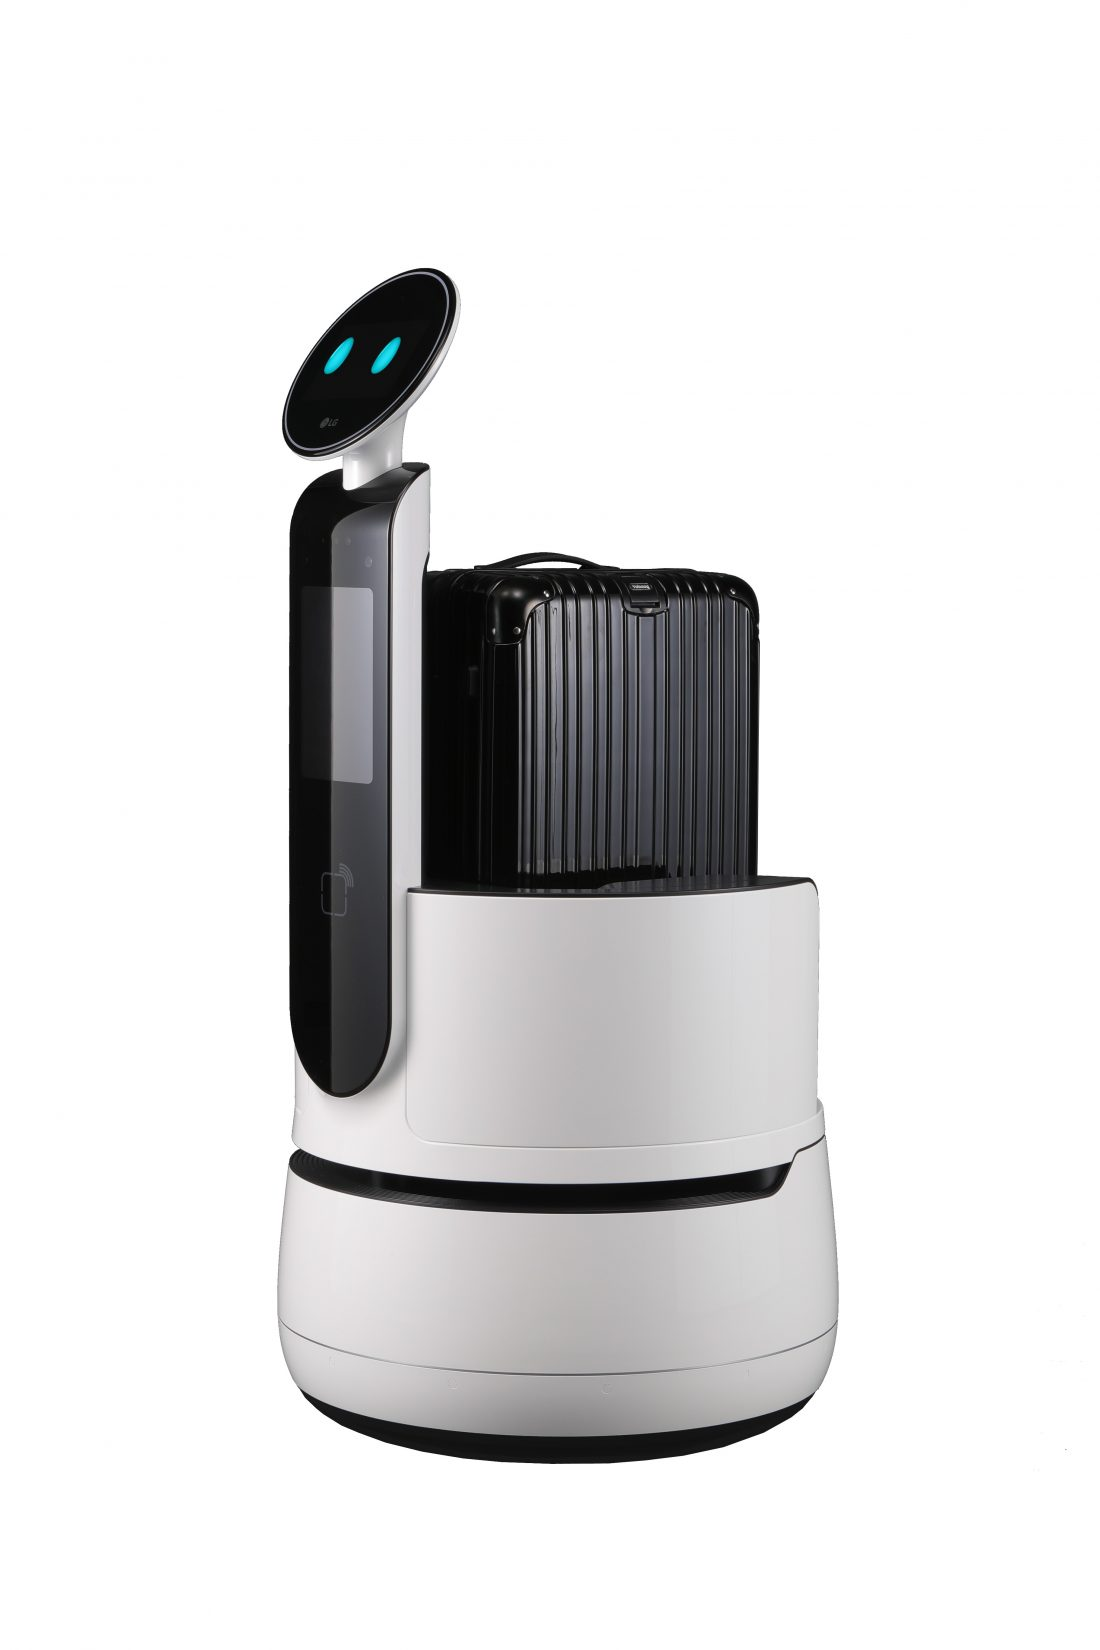 Front view of the LG CLOi CartBot facing 45 degress to the left